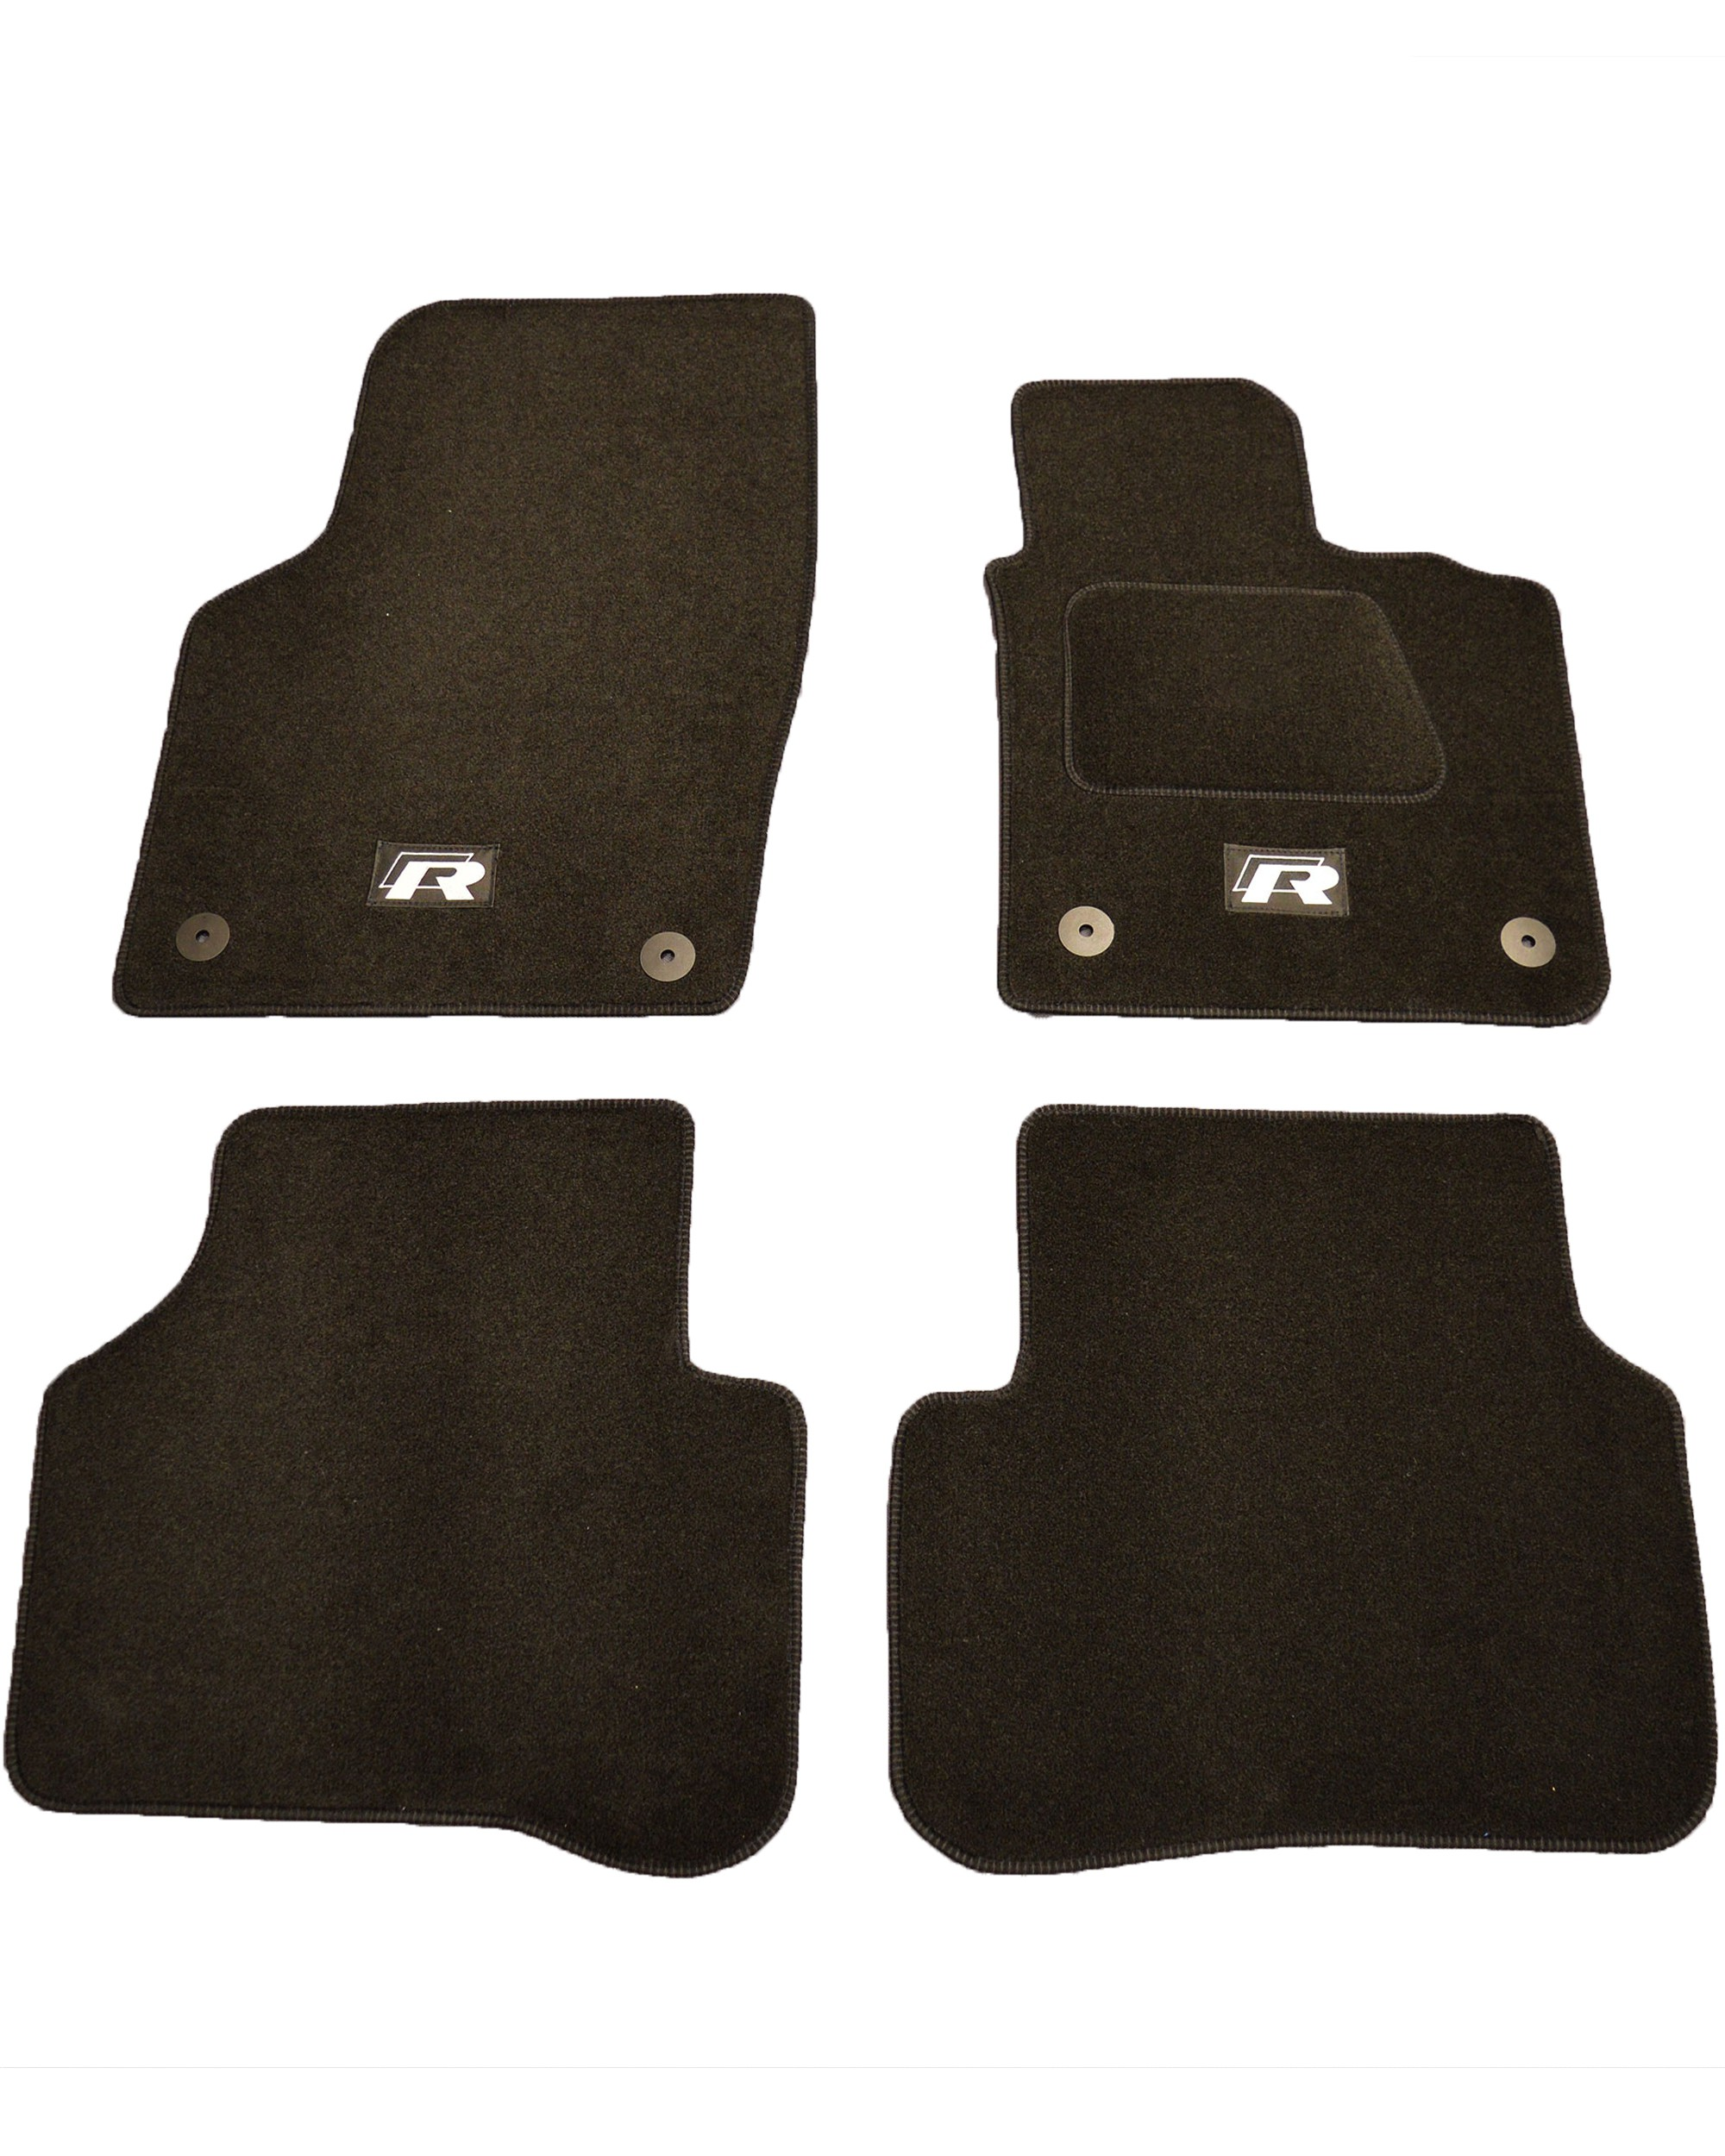 Volkswagen Passat B6 & B7 R Line Tailored Car Floor Mats Black